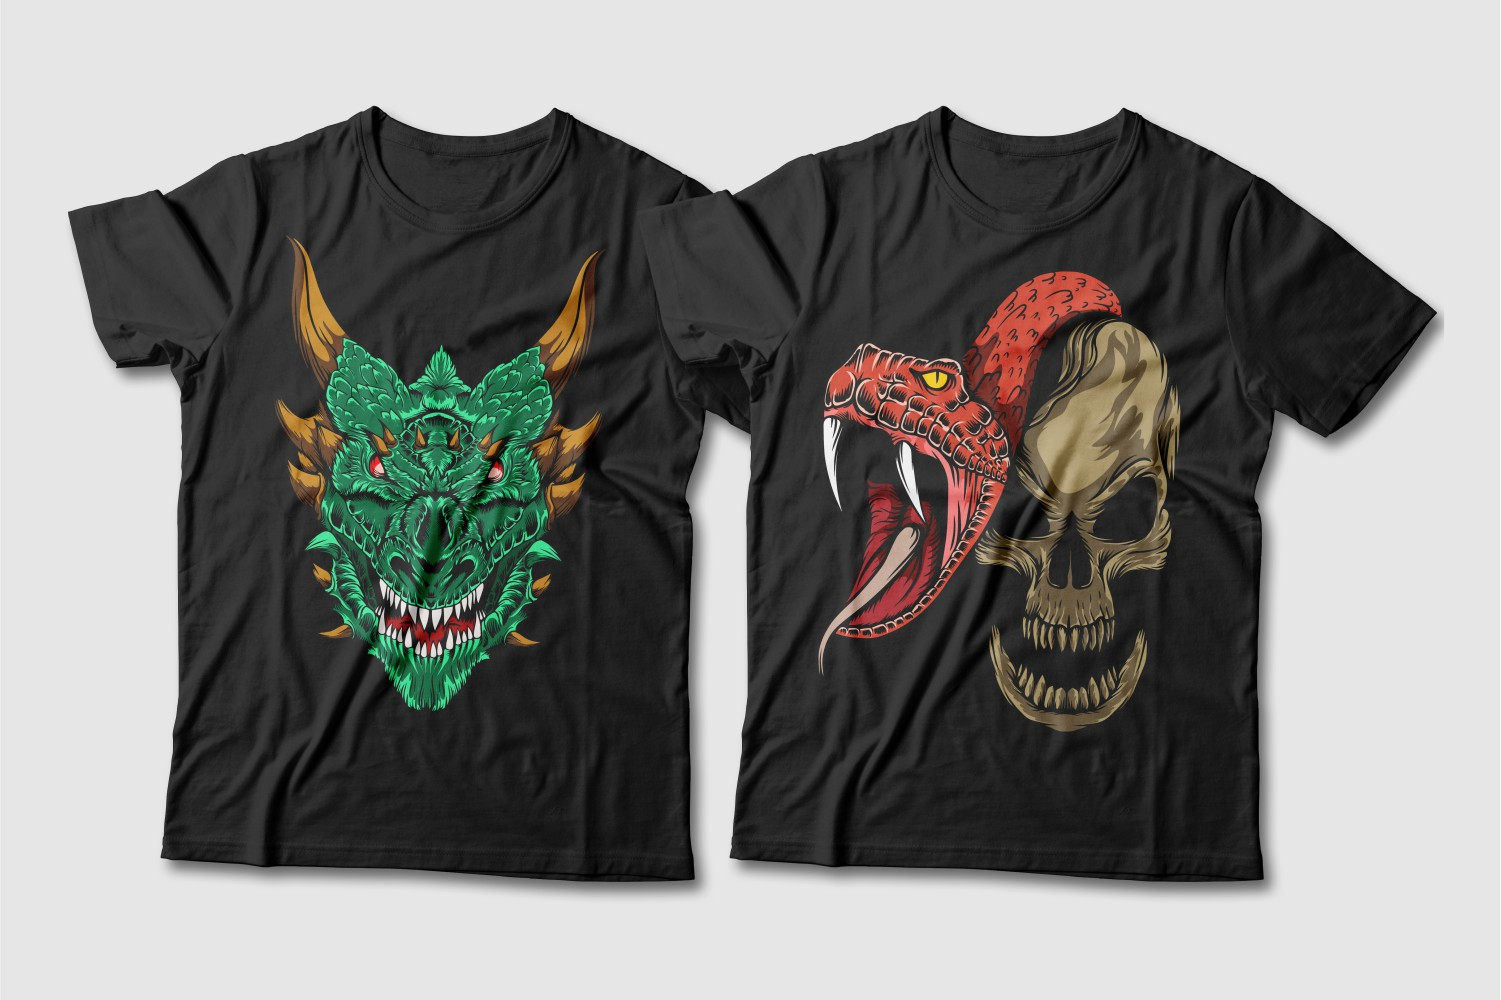 Black T-shirts with a crew neck and the image of an emerald dragon with brown horns and eyes and a red snake around the skull.